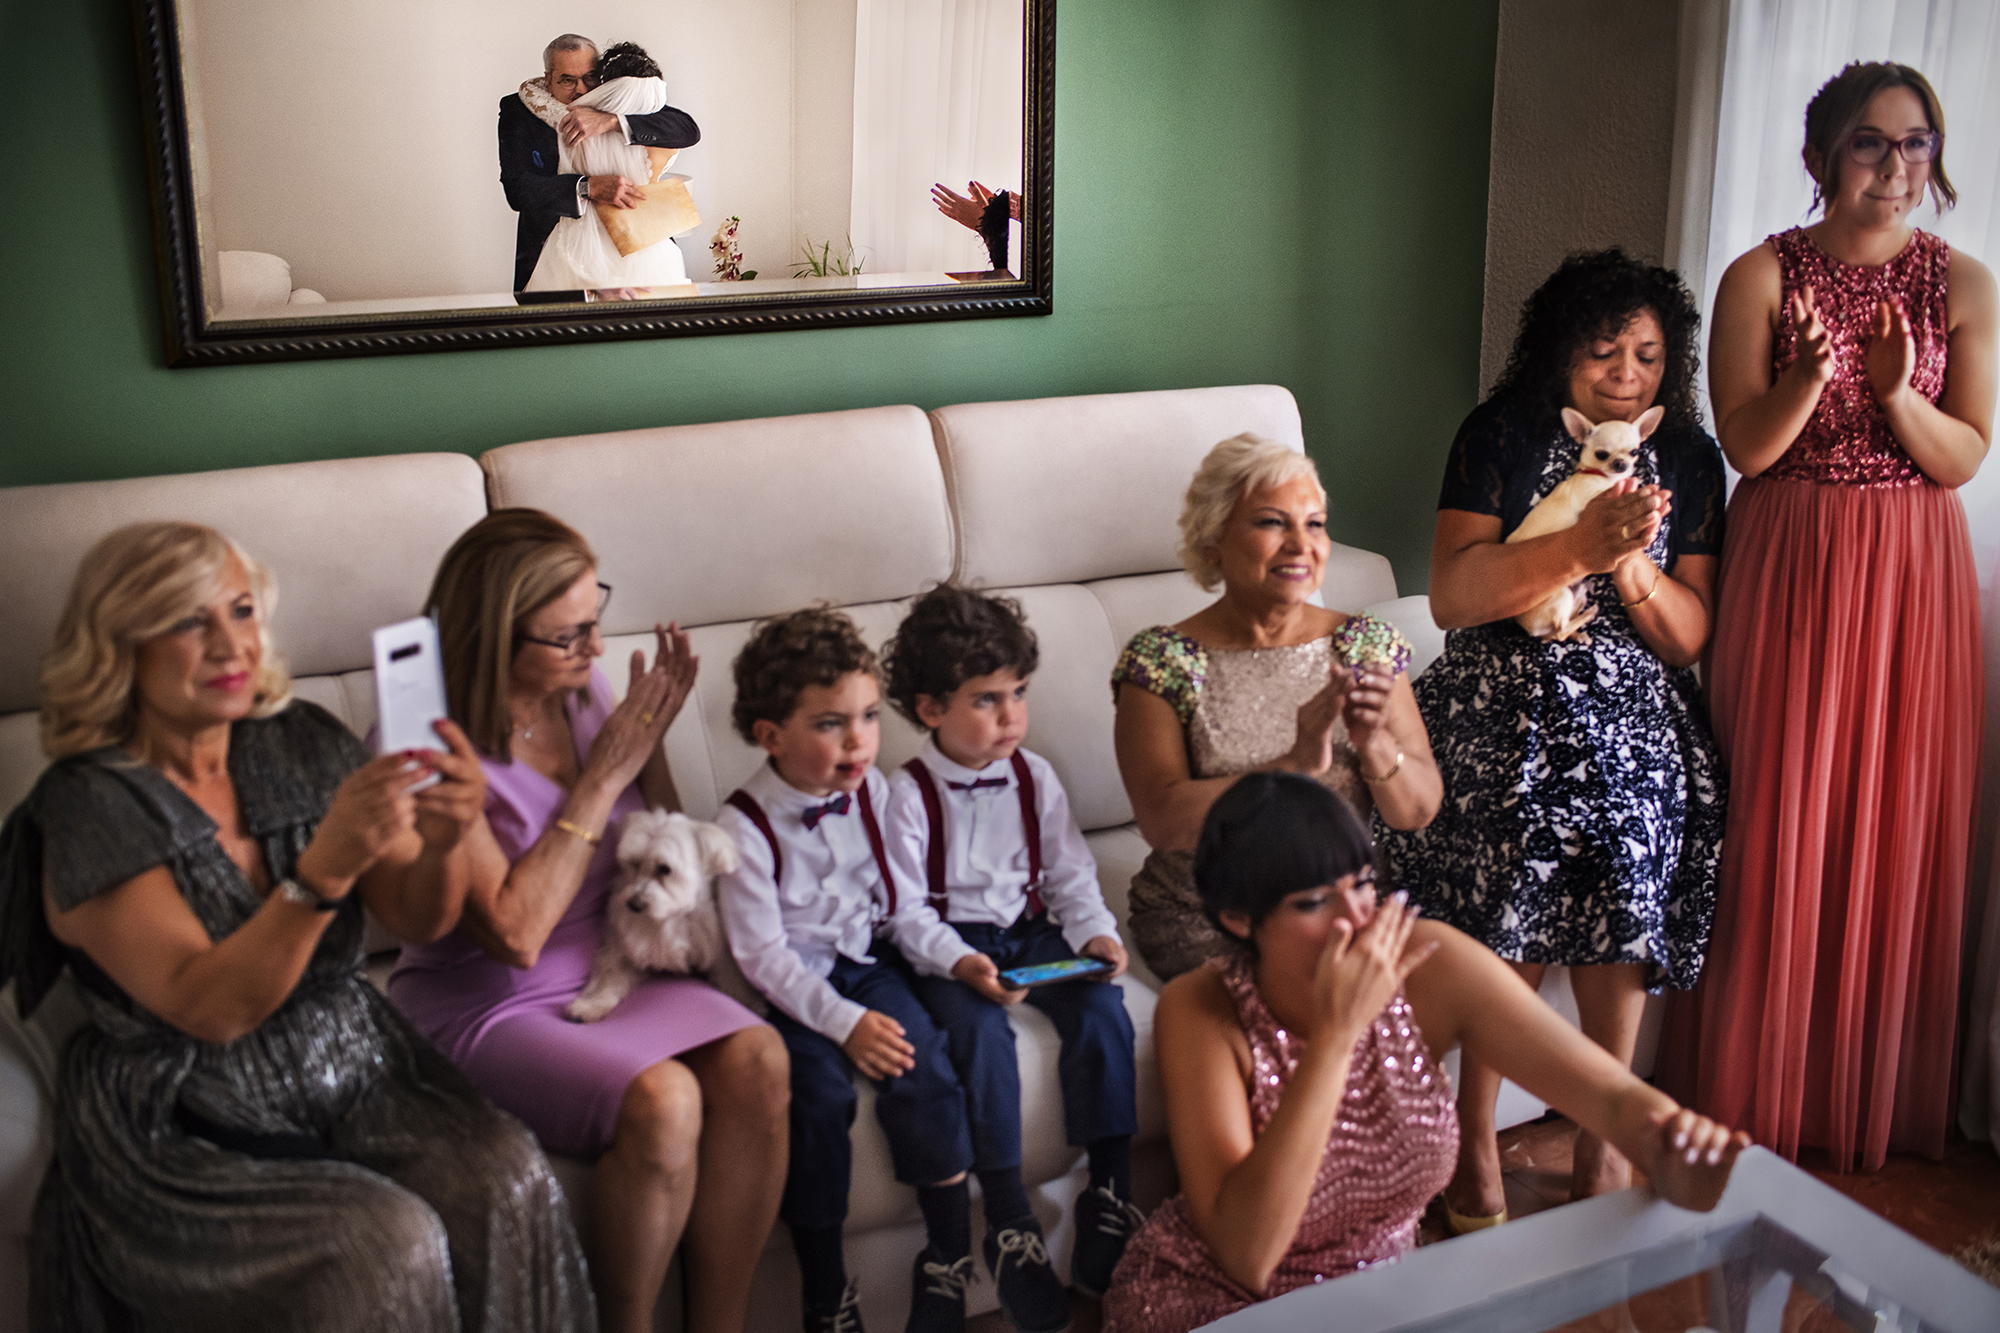 Reflection of bride with dad and family - photo by Victor Lax